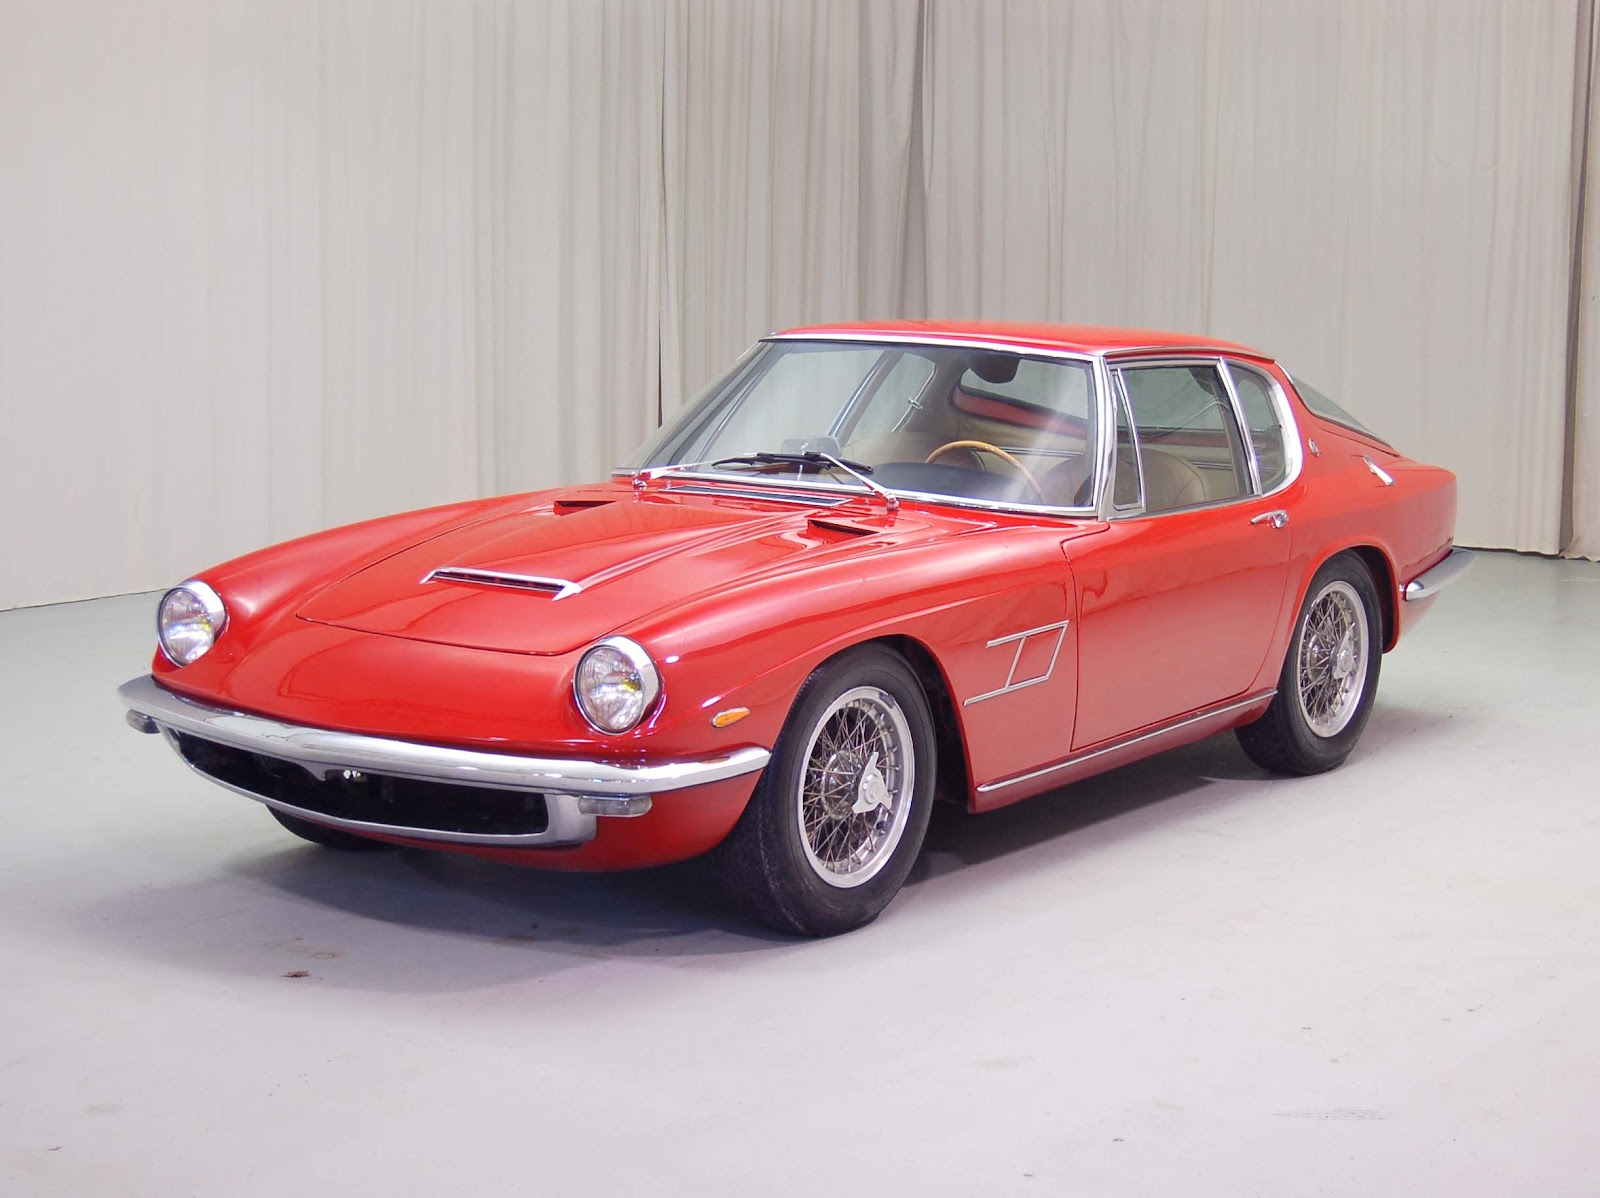 Classic Car Wallpaper 57 Chevy Classic Car Posters Maserati Mistral